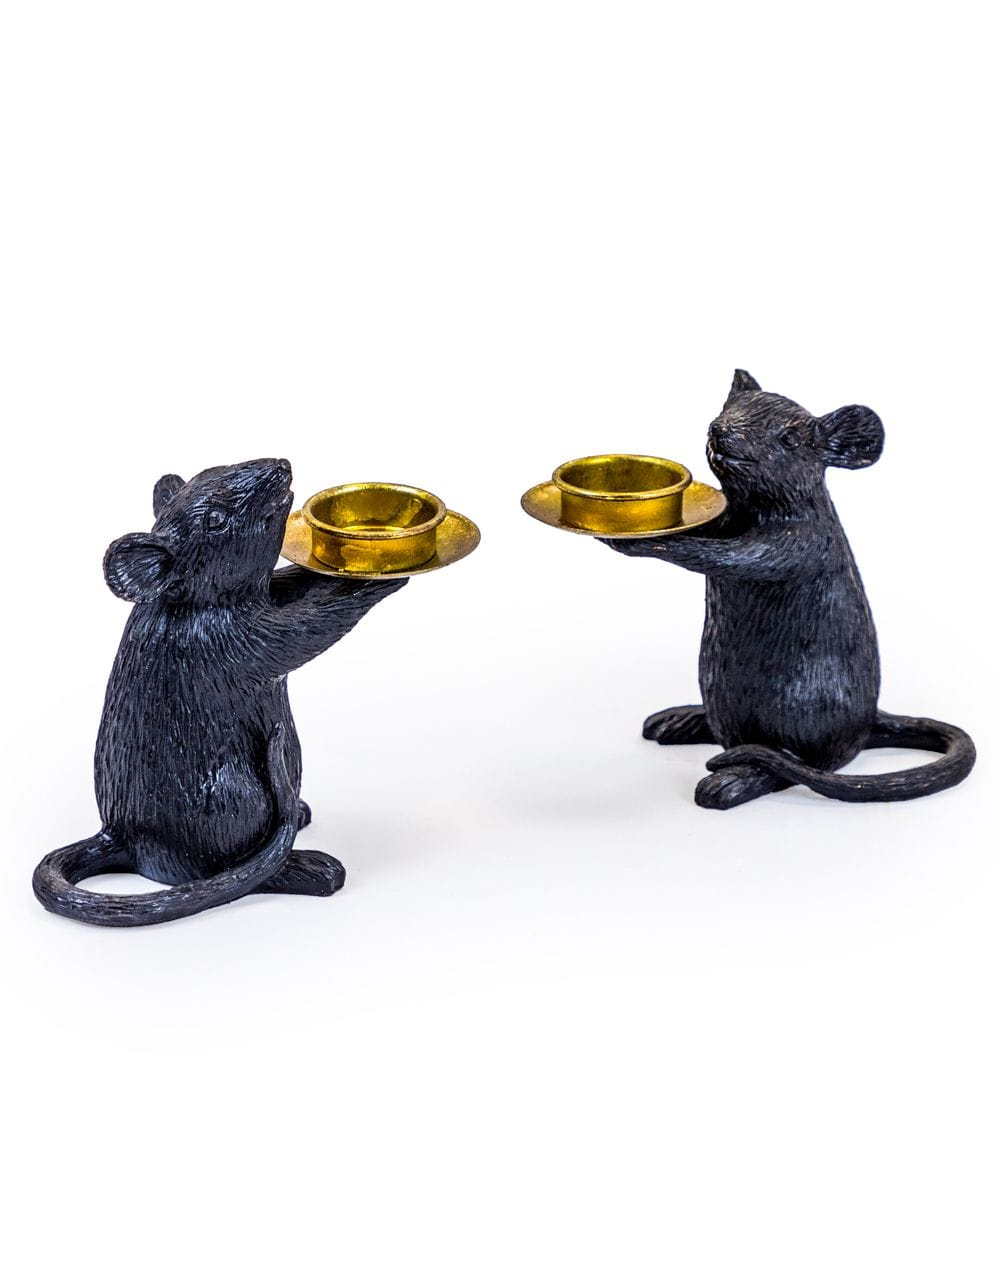 Pair of Black Mouse Candle Holders - €49.00 | 15x16.5x8cm